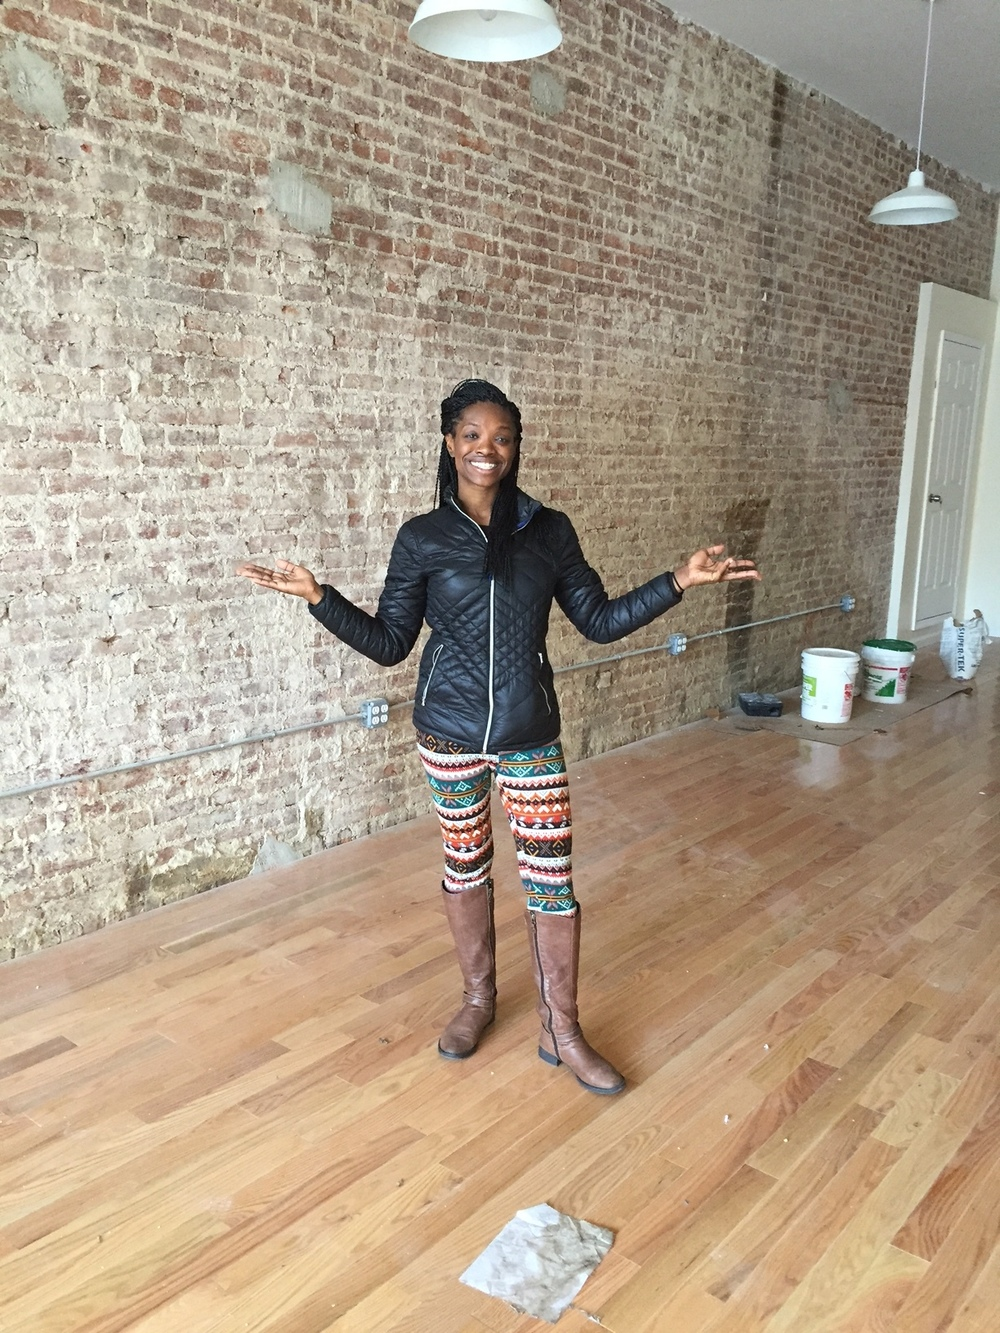 Owner + Instructor Laci Chisholm stands in the future Fit 4 Dance studio location.